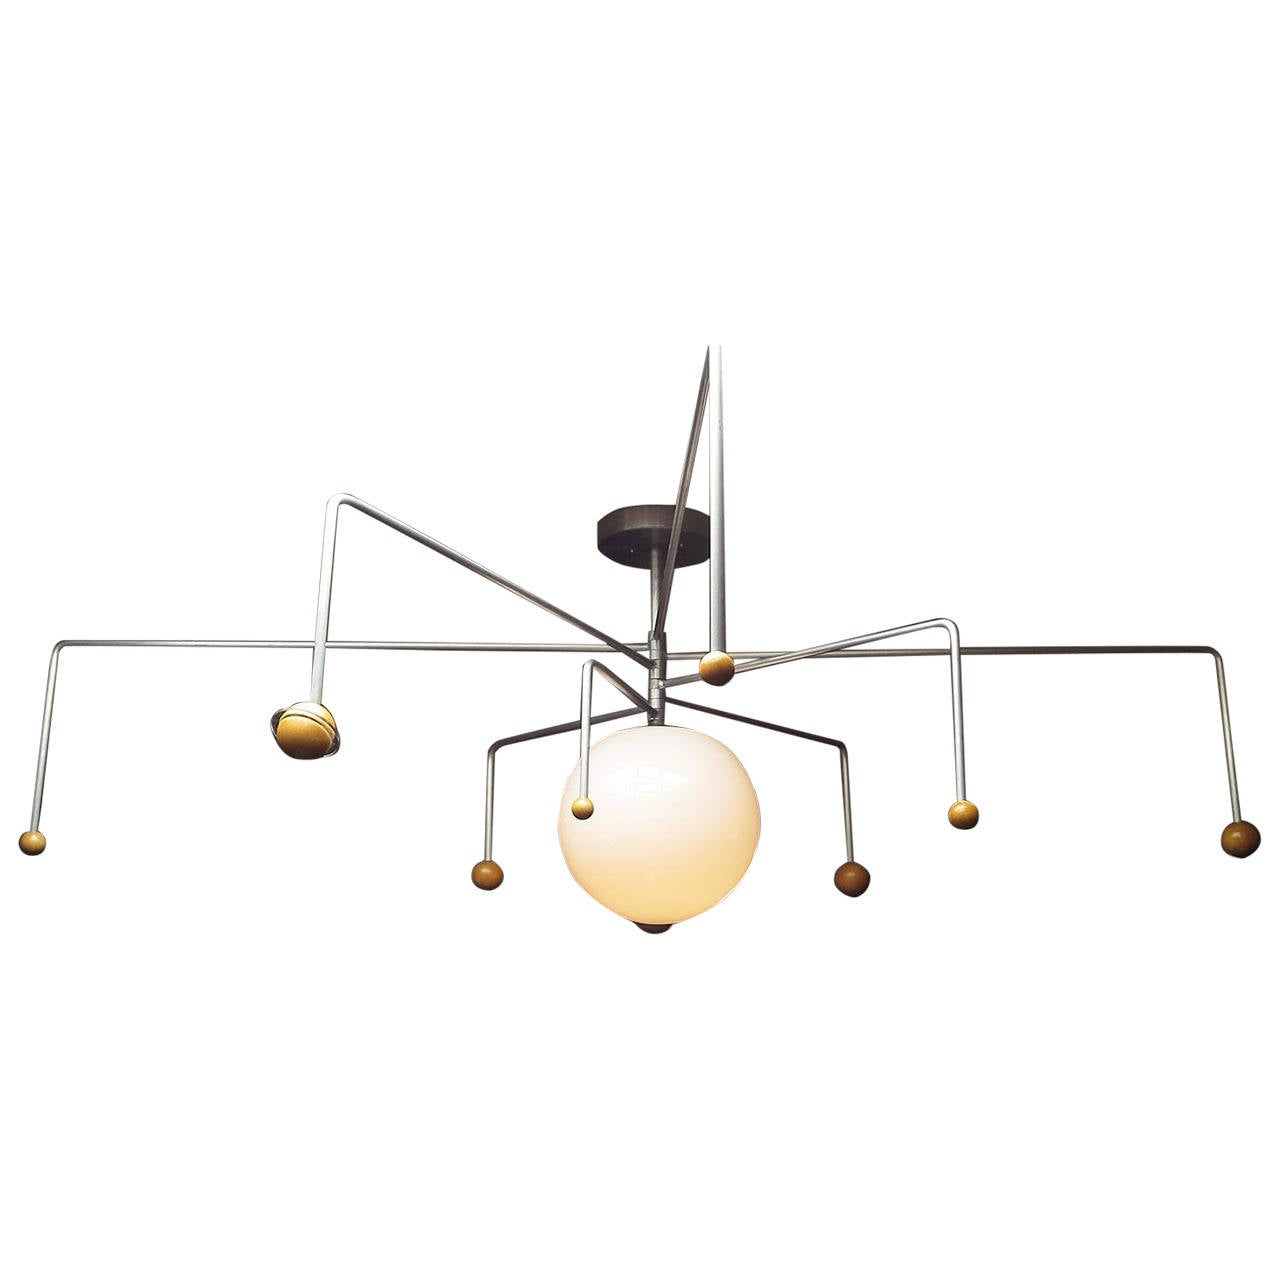 Mid century solar system ceiling lamp at 1stdibs for Mid century ceiling lamp